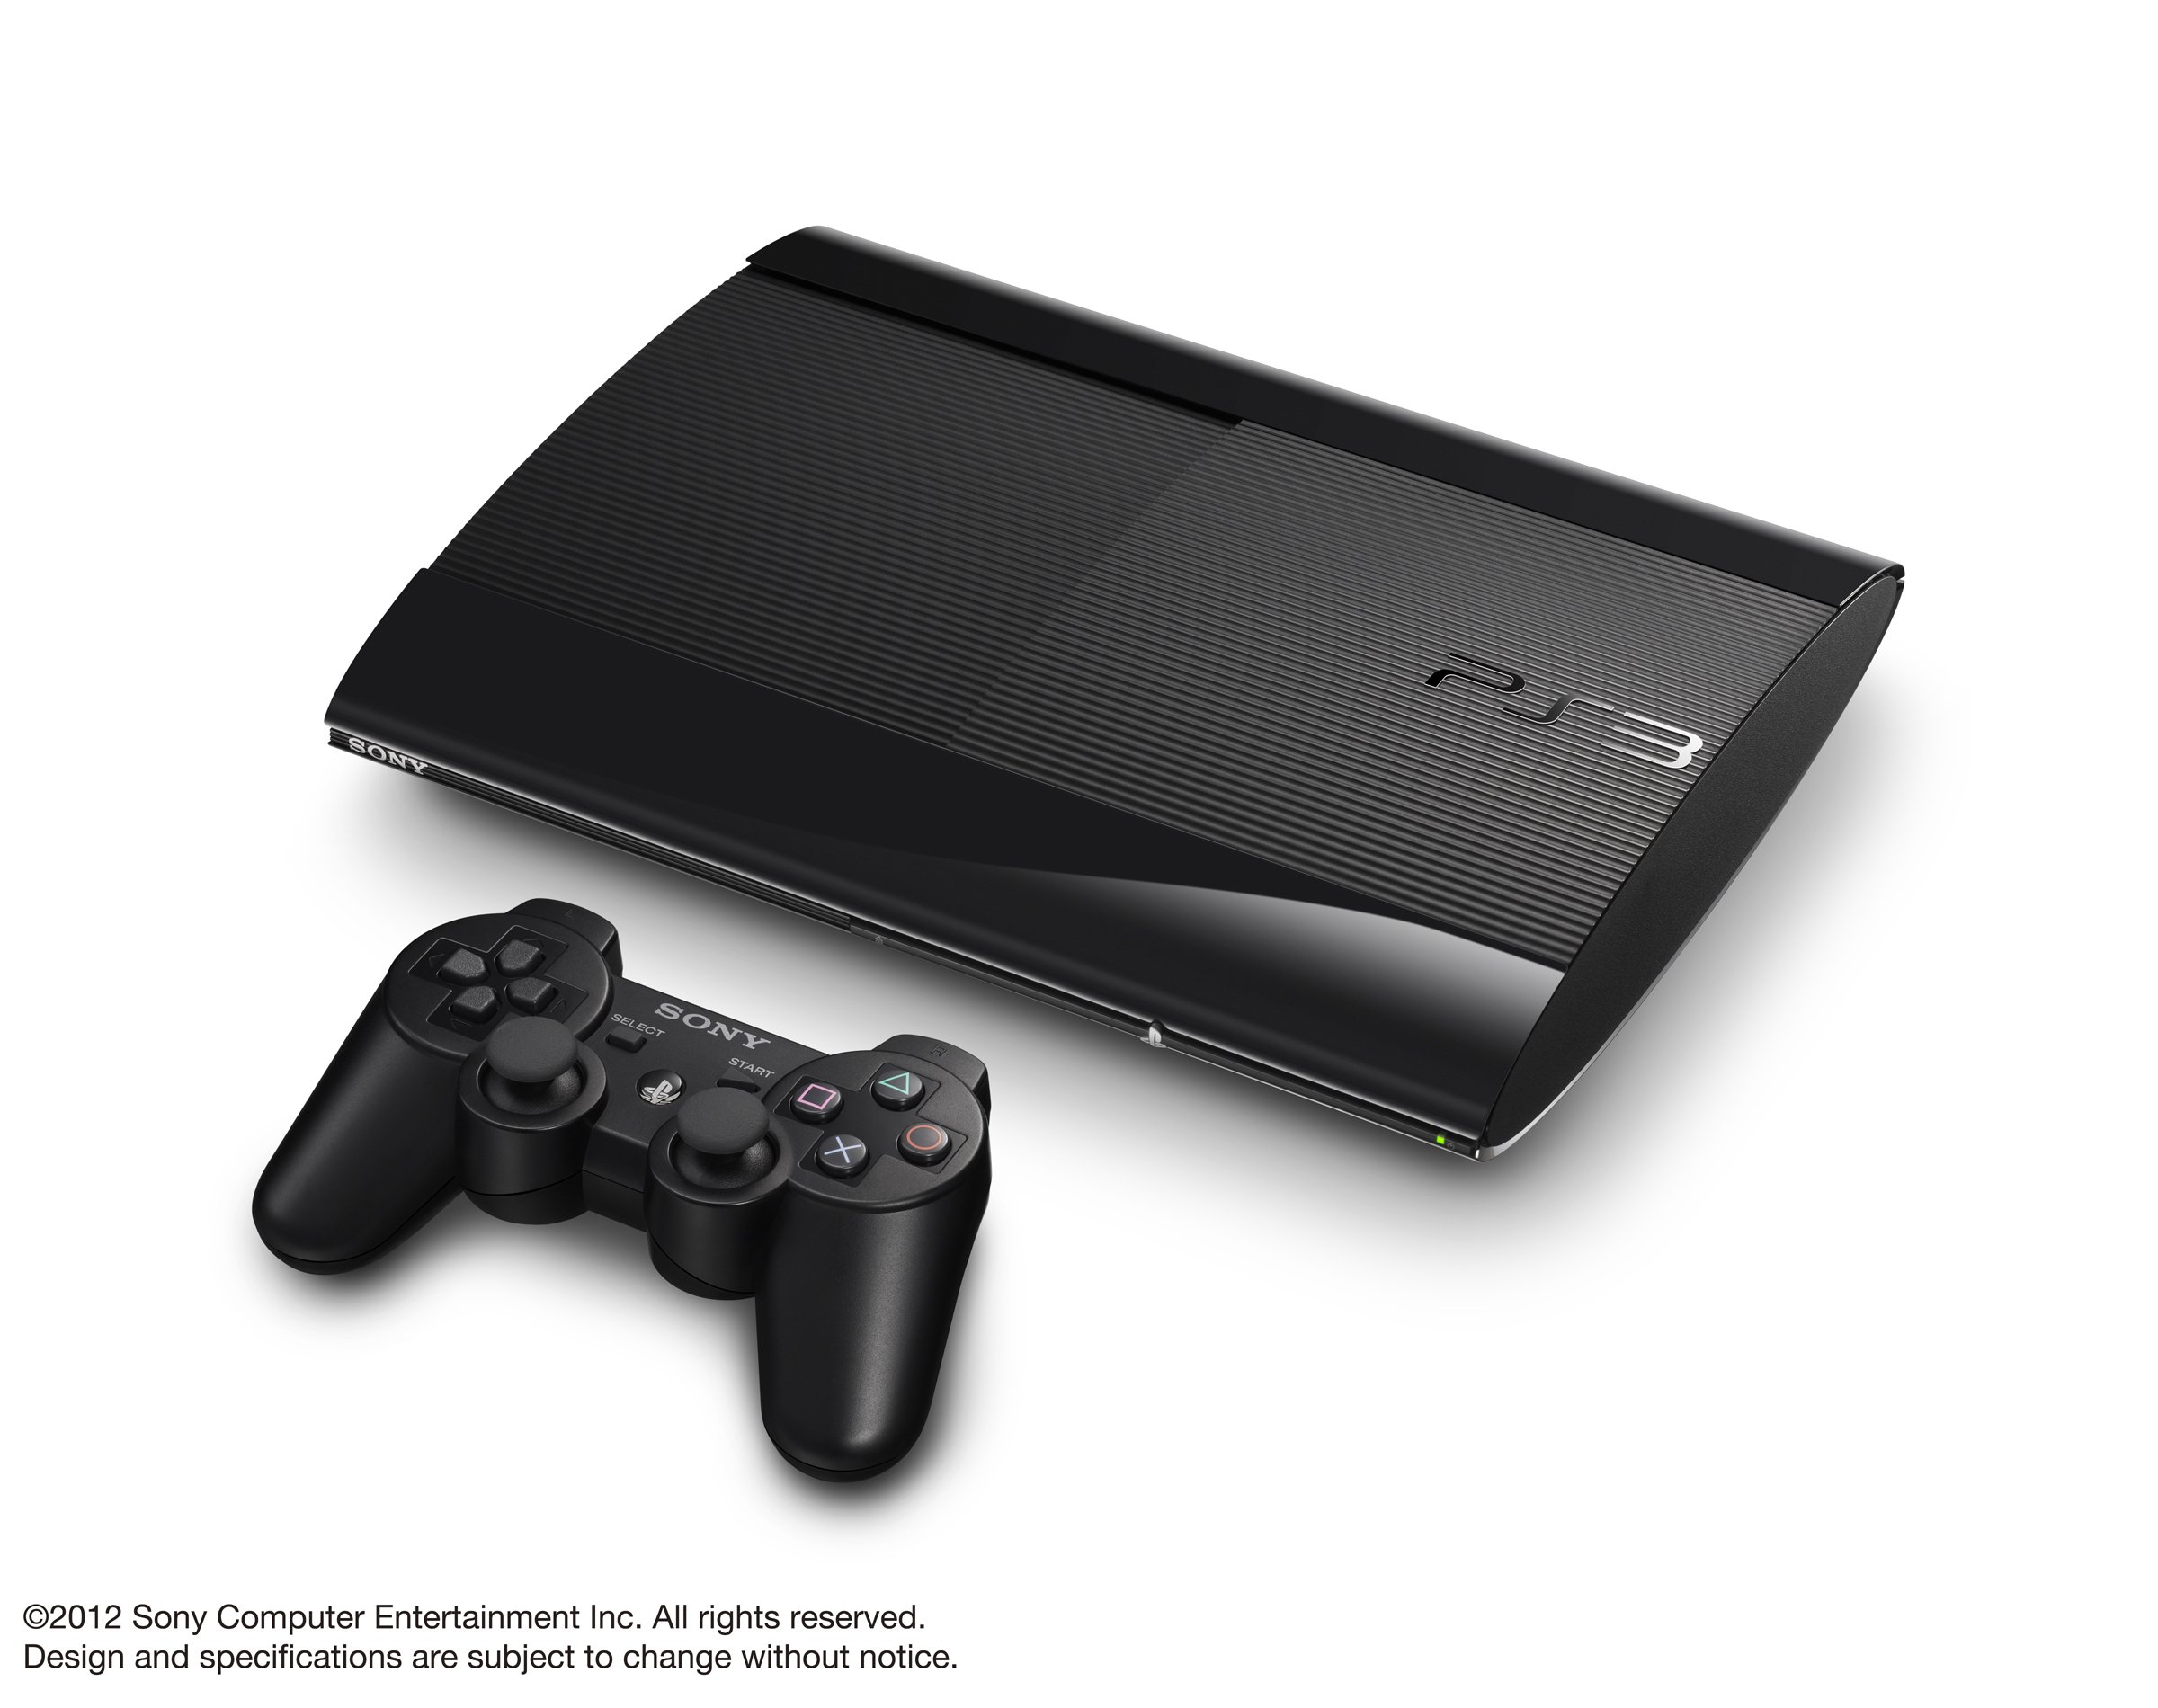 SONY PlayStation3 PS3 Console 250GB | JAPAN MODEL |CECH-4000B LW Black (Japan Import)